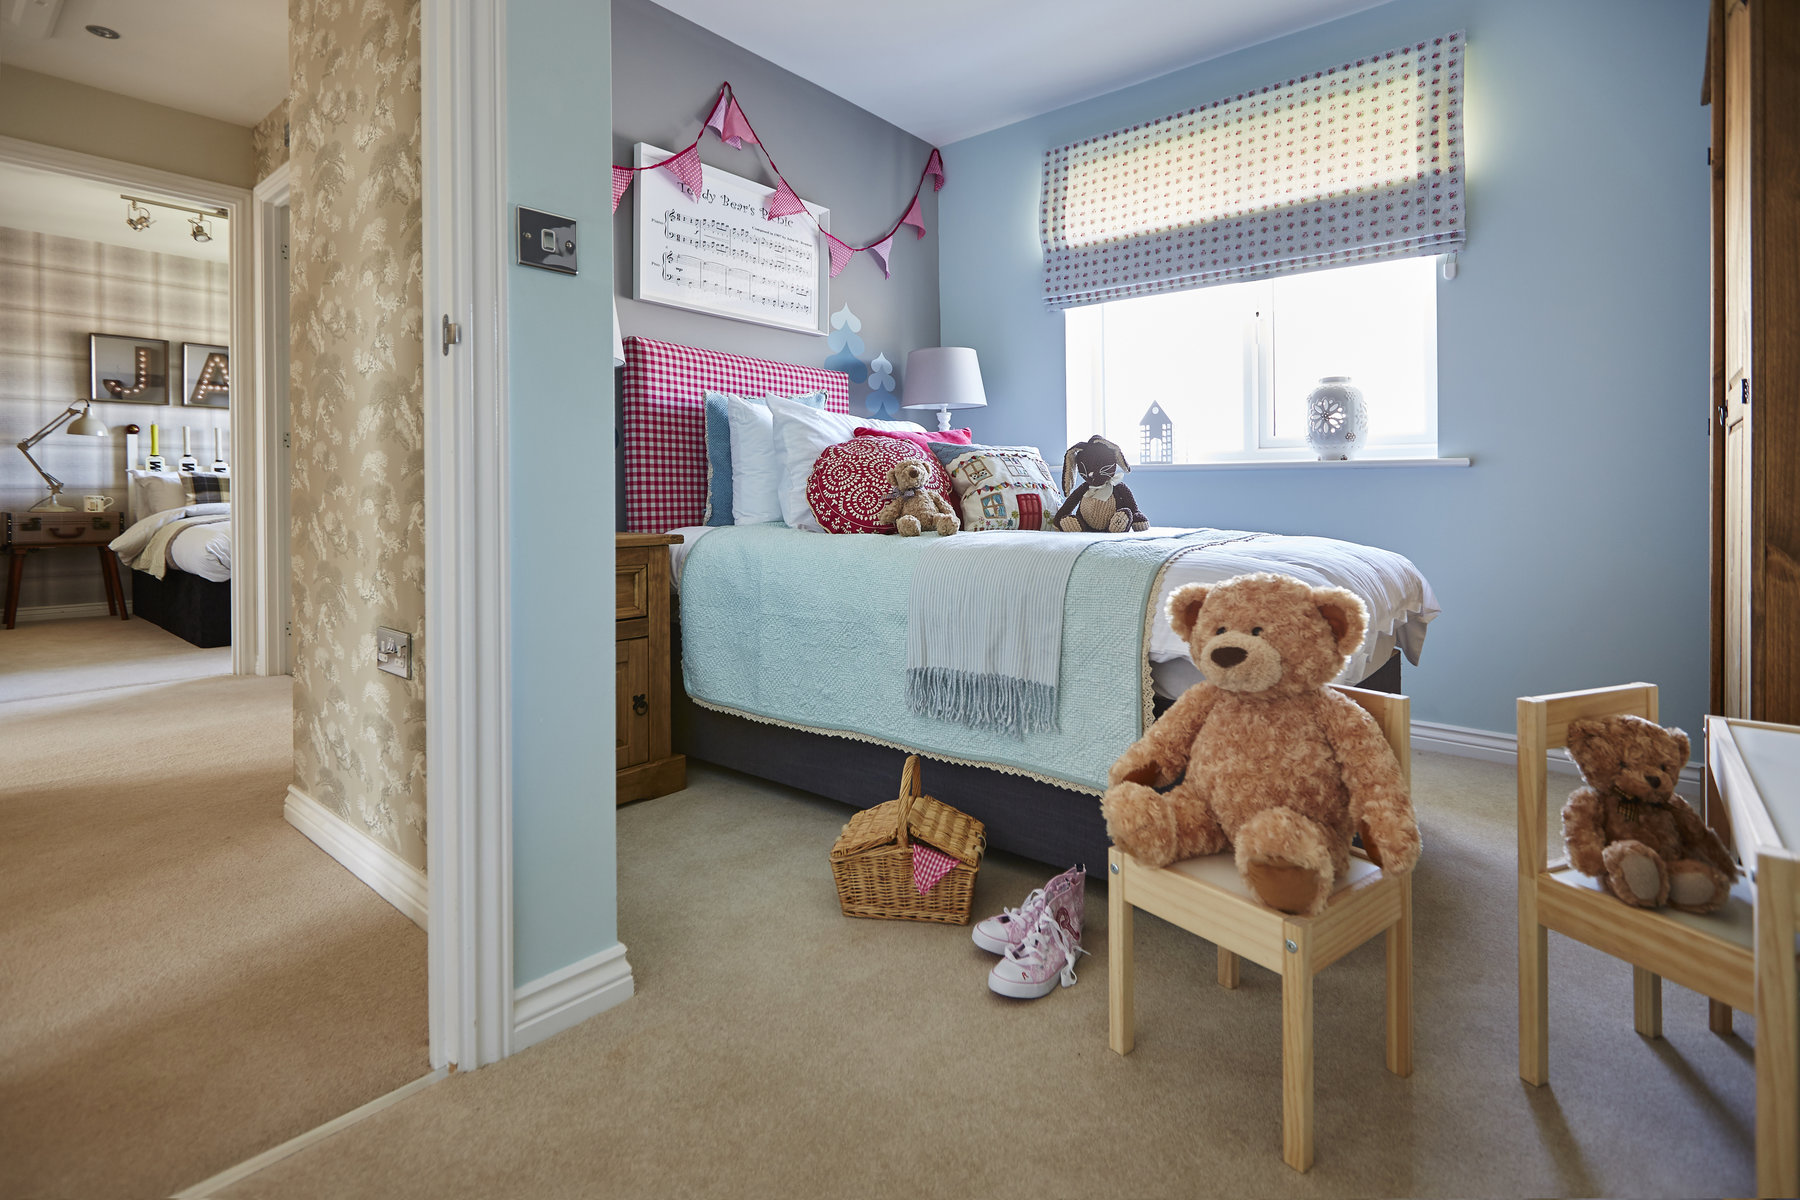 rsz_tw_mids_burlington_fields_shifnal_pa48_shelford_bedroom